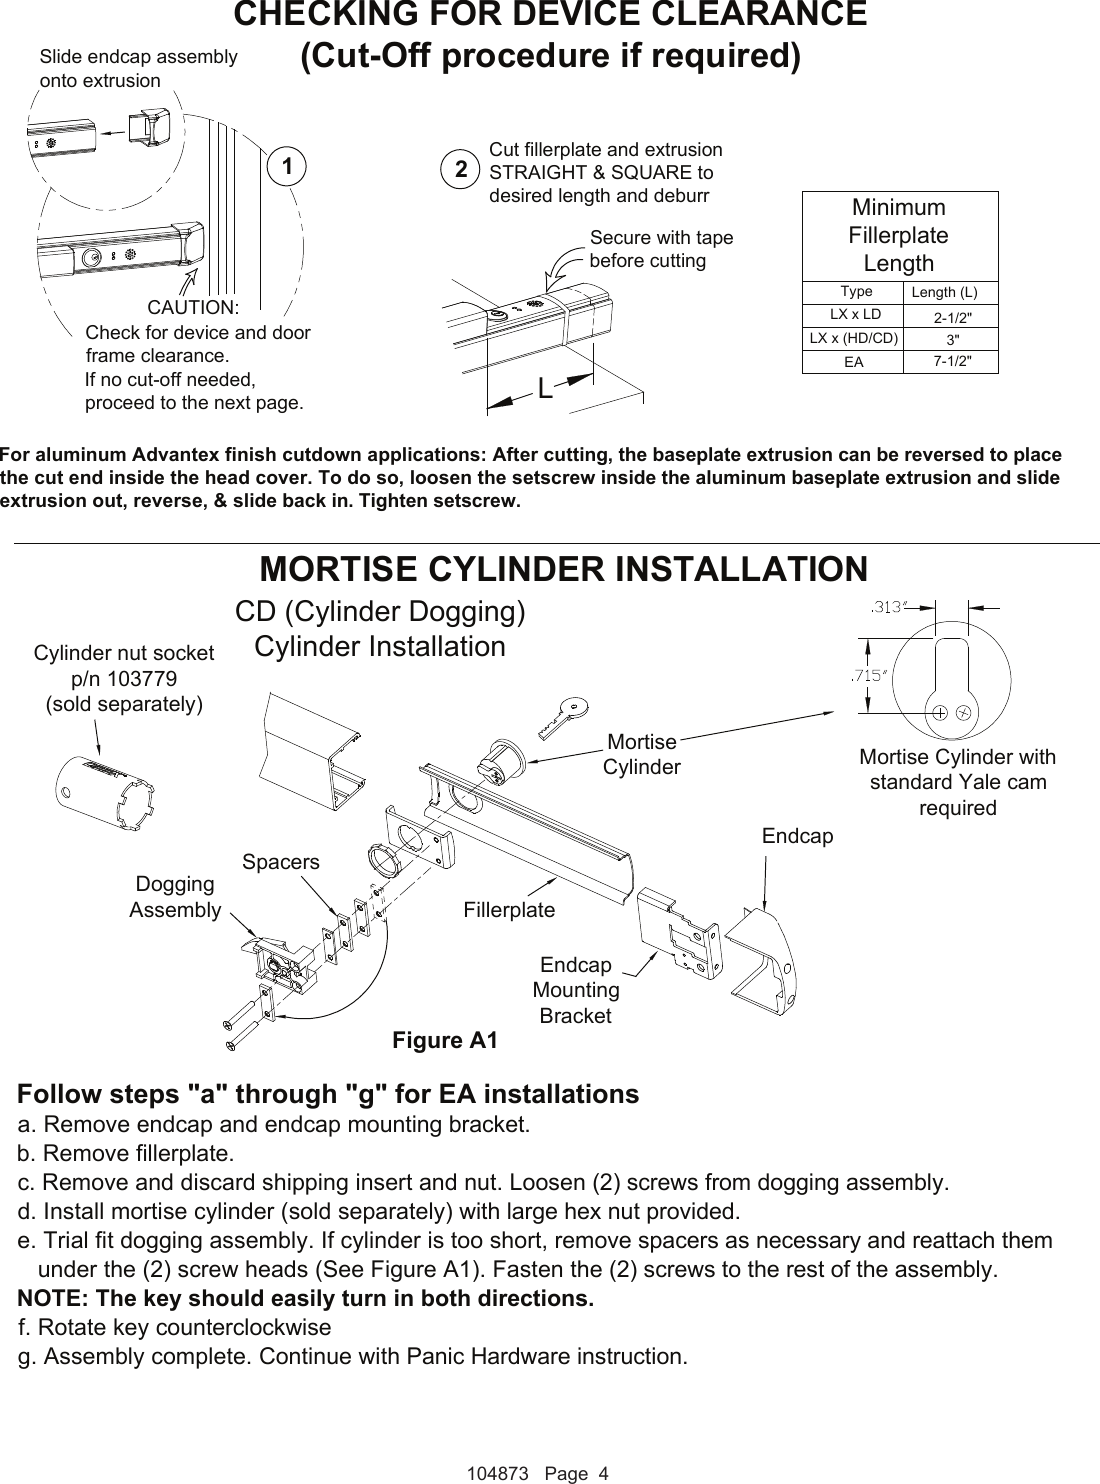 Detex Electrical Instructions For Advantex Ea Or Ex S 104873 Wiring Diagrams Page 4 Of 7